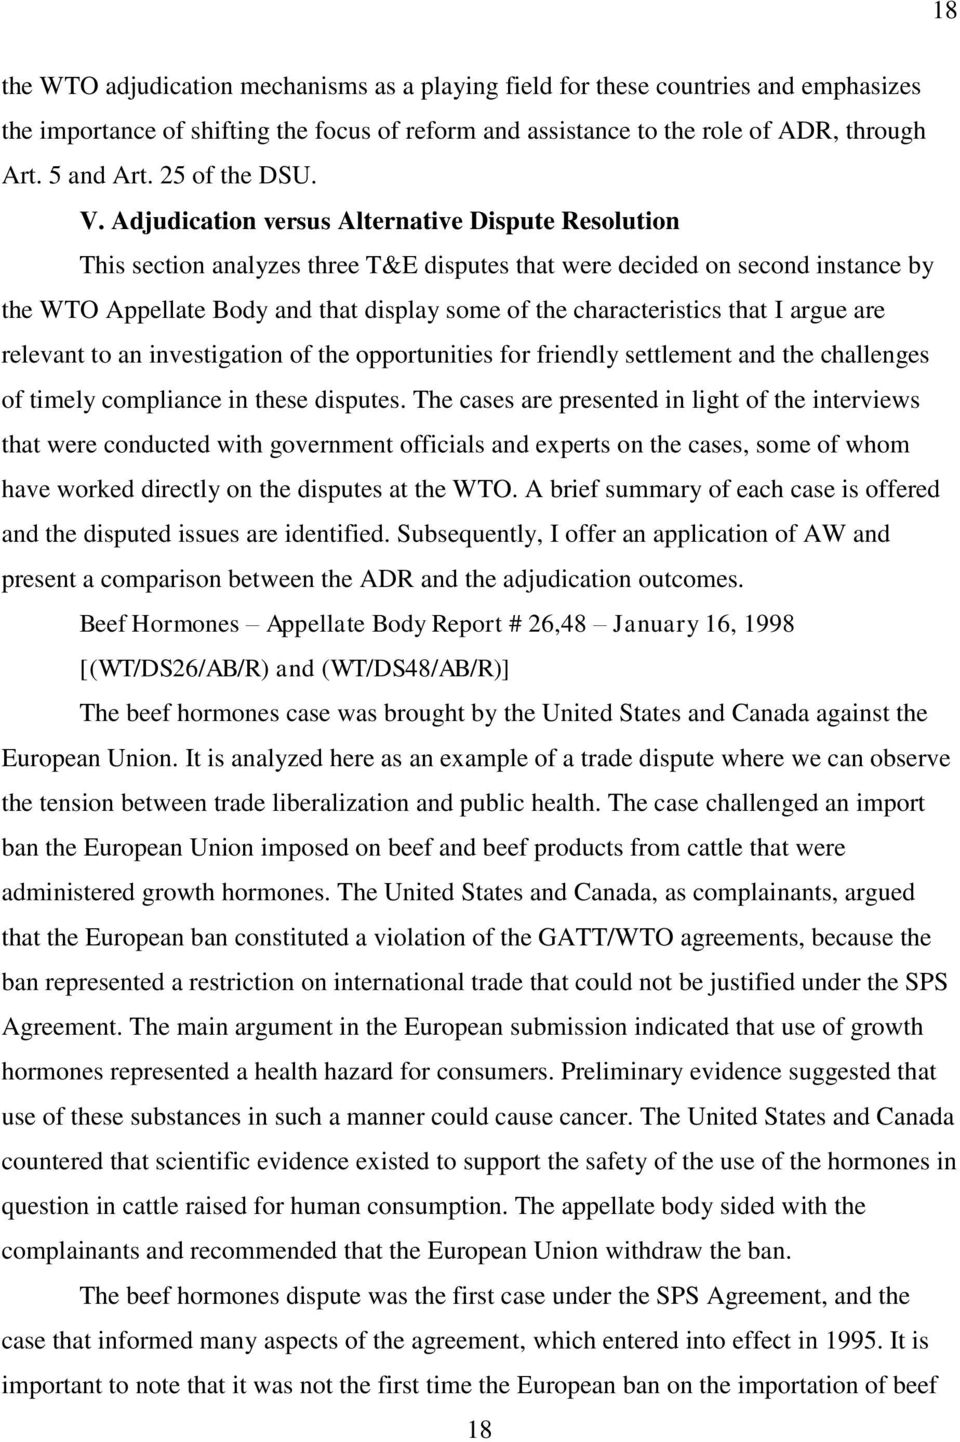 Adjudication versus Alternative Dispute Resolution This section analyzes three T&E disputes that were decided on second instance by the WTO Appellate Body and that display some of the characteristics